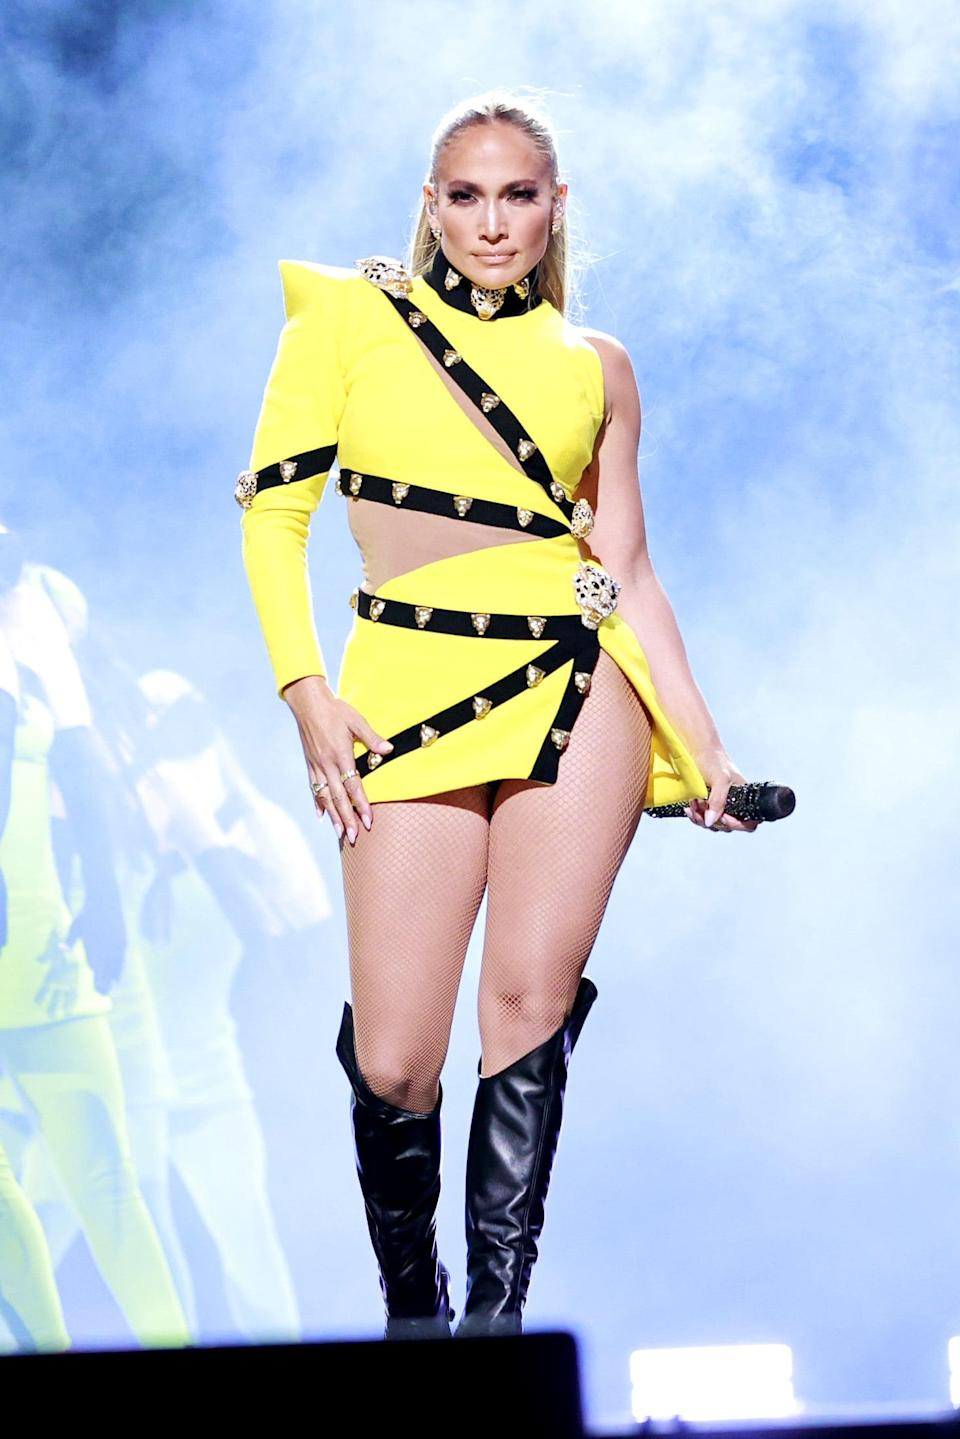 <p>Fausto Puglisi, the new creative director at Roberto Cavalli, worked with J Lo's team to design her this yellow cutout studded minidress for the event and also dress her backup dancers.</p>